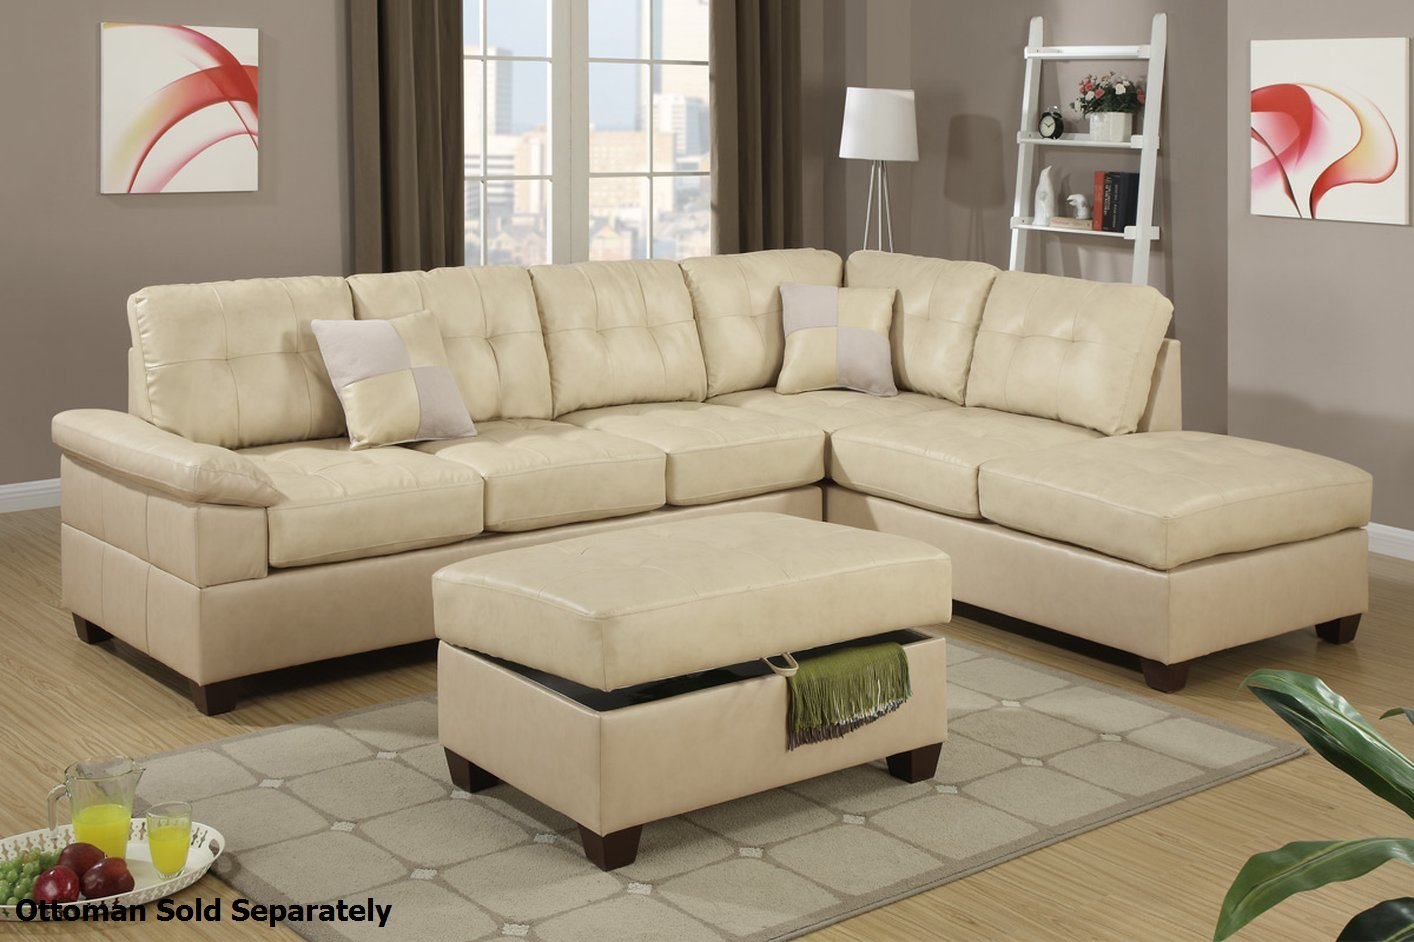 Poundex Reese F7520 Beige Leather Sectional Sofa Steal A Sofa Furniture Outlet Los Angeles CA